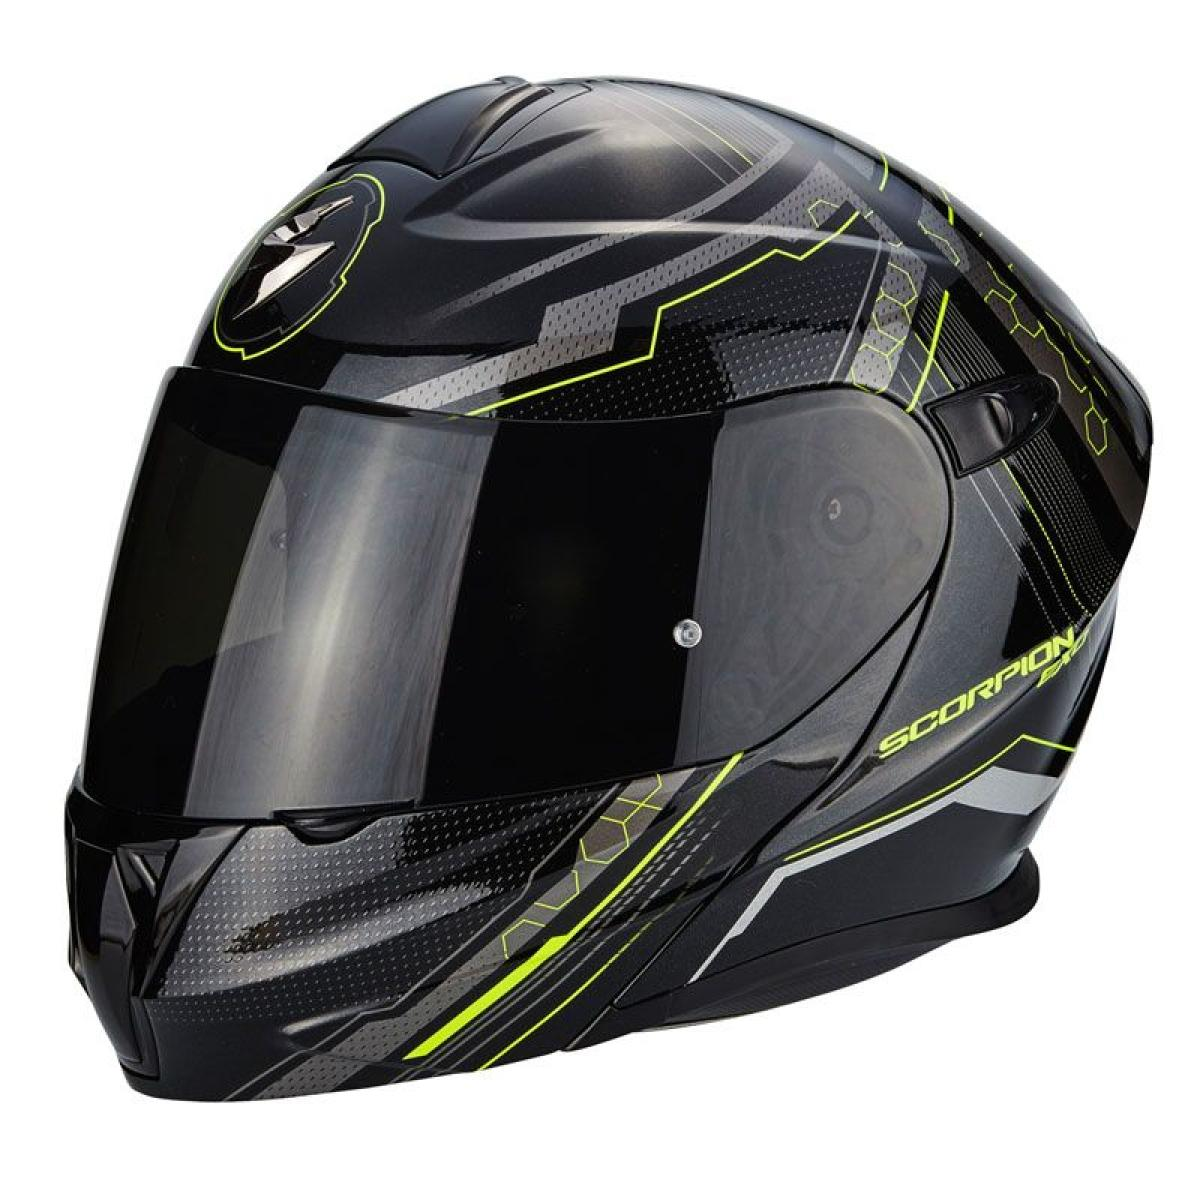 casque moto modulable scorpion exo 920 satellite noir jaune fluo. Black Bedroom Furniture Sets. Home Design Ideas